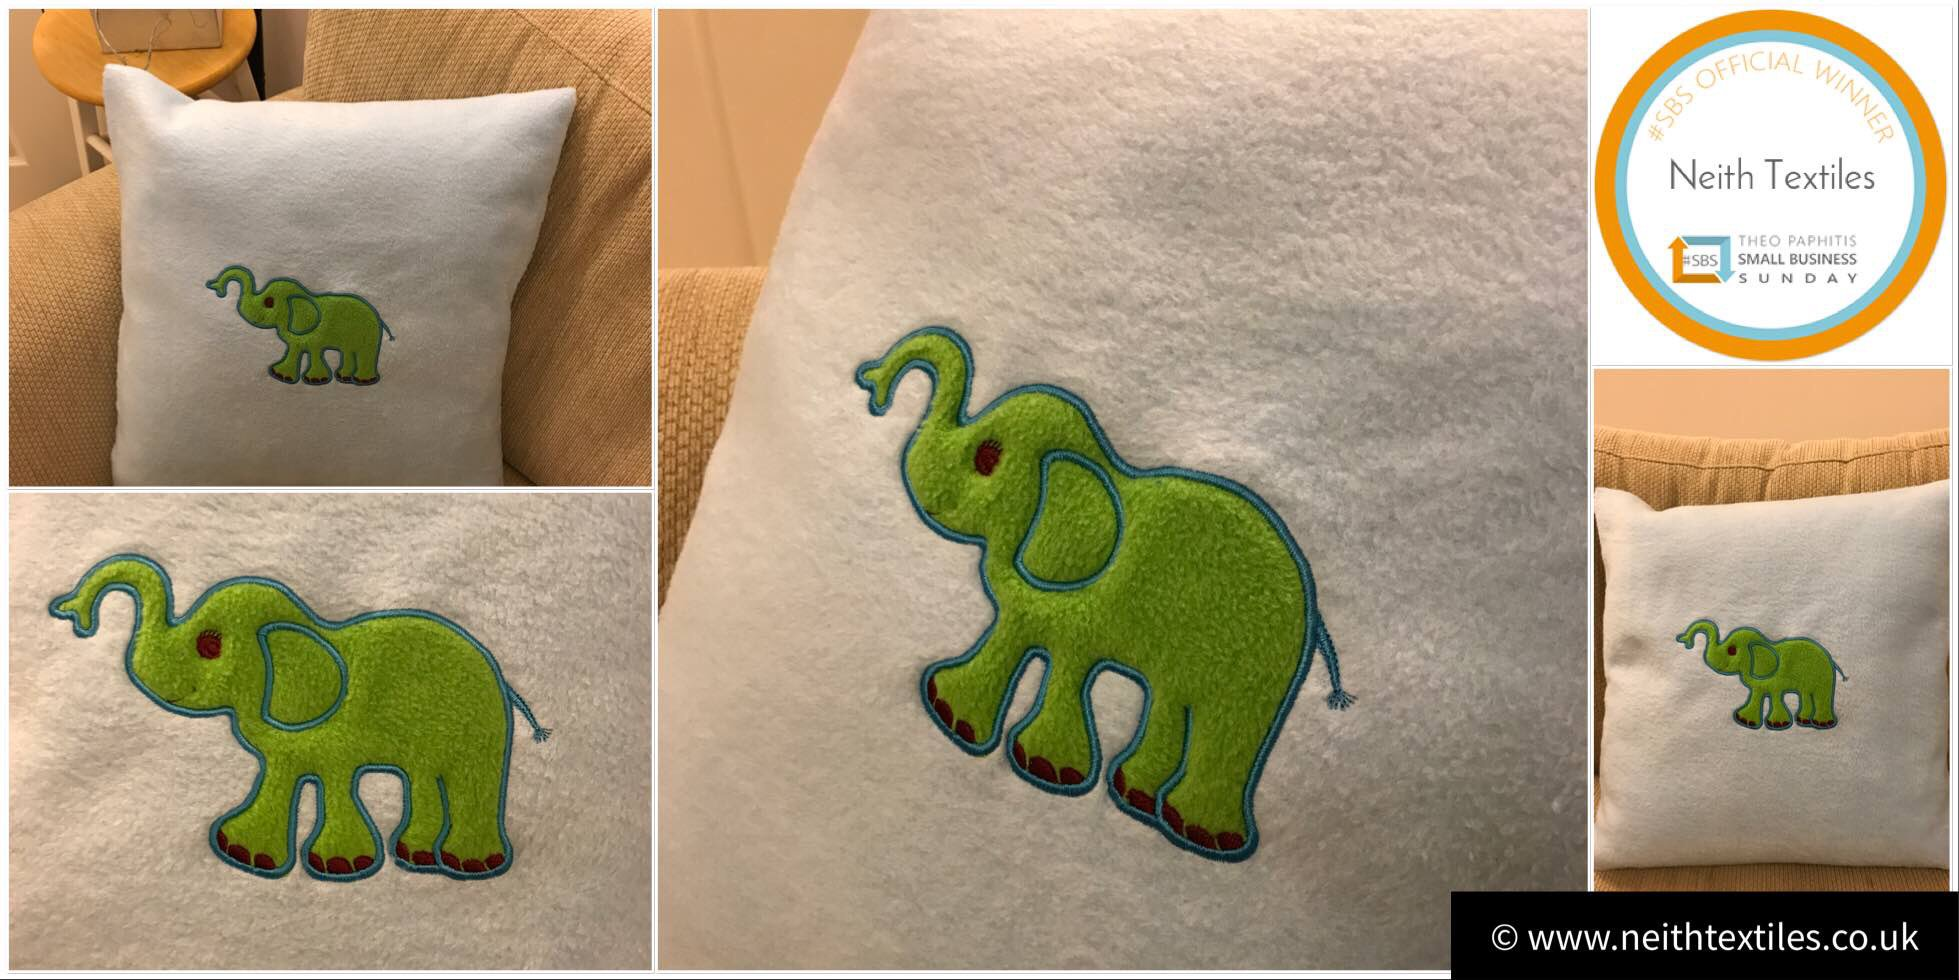 Our elephant fleece cushion makes a perfect gift ����  https://t.co/mh6ioZHR9H  #womaninbiz #wnukrt https://t.co/va9ChKobL3